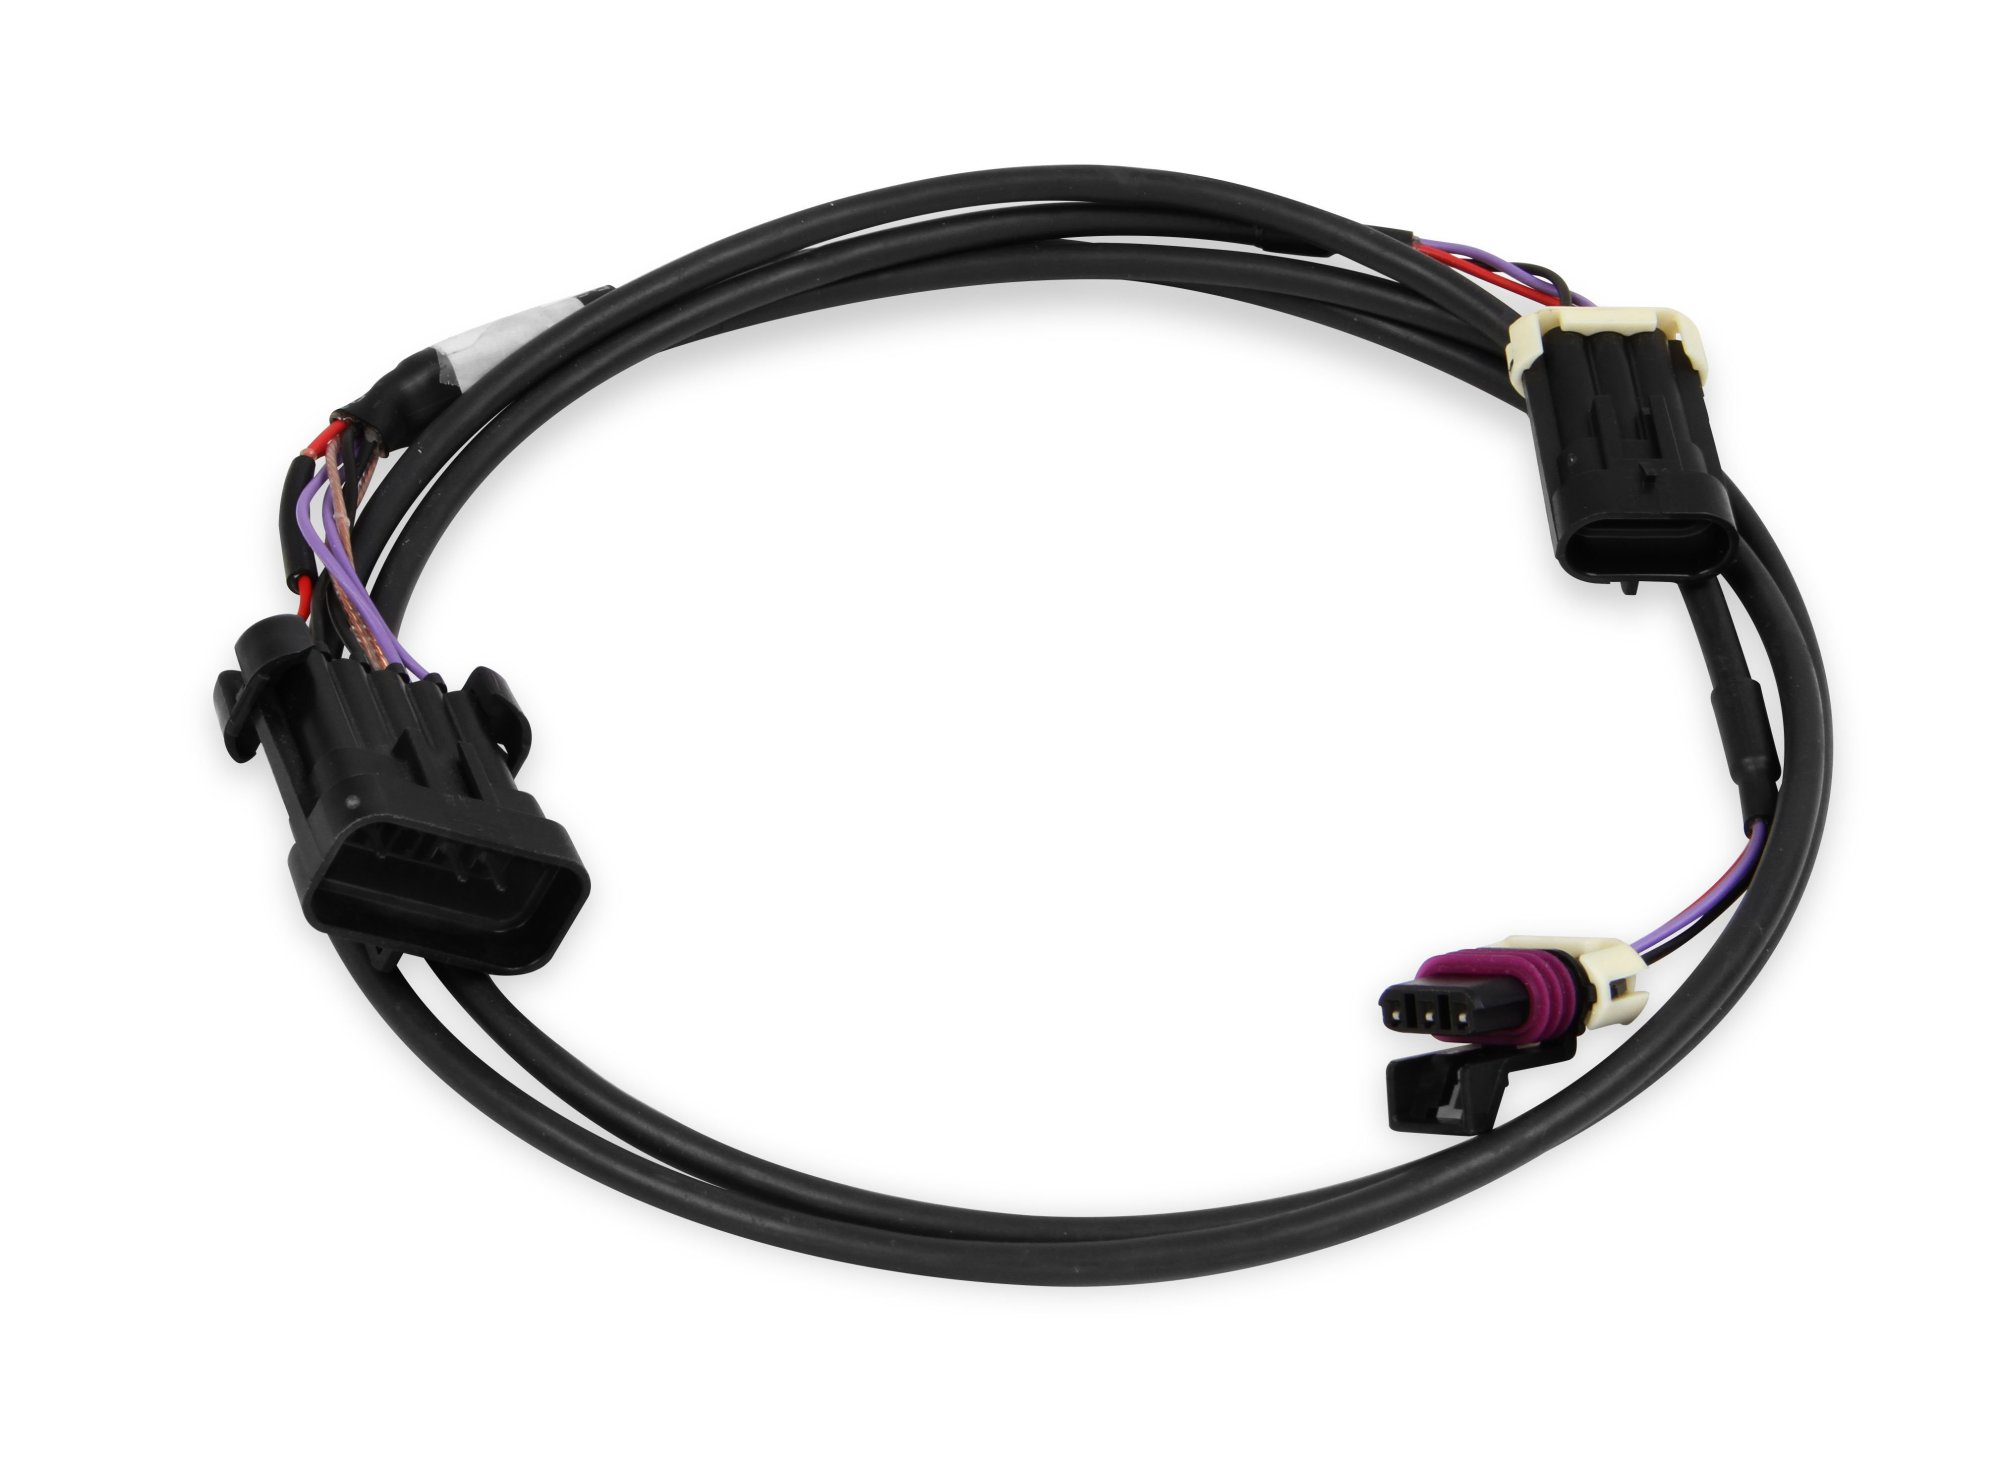 hight resolution of holley efi 558 431 crank cam ign harness fully terminated harness558 431 crank cam ign harness